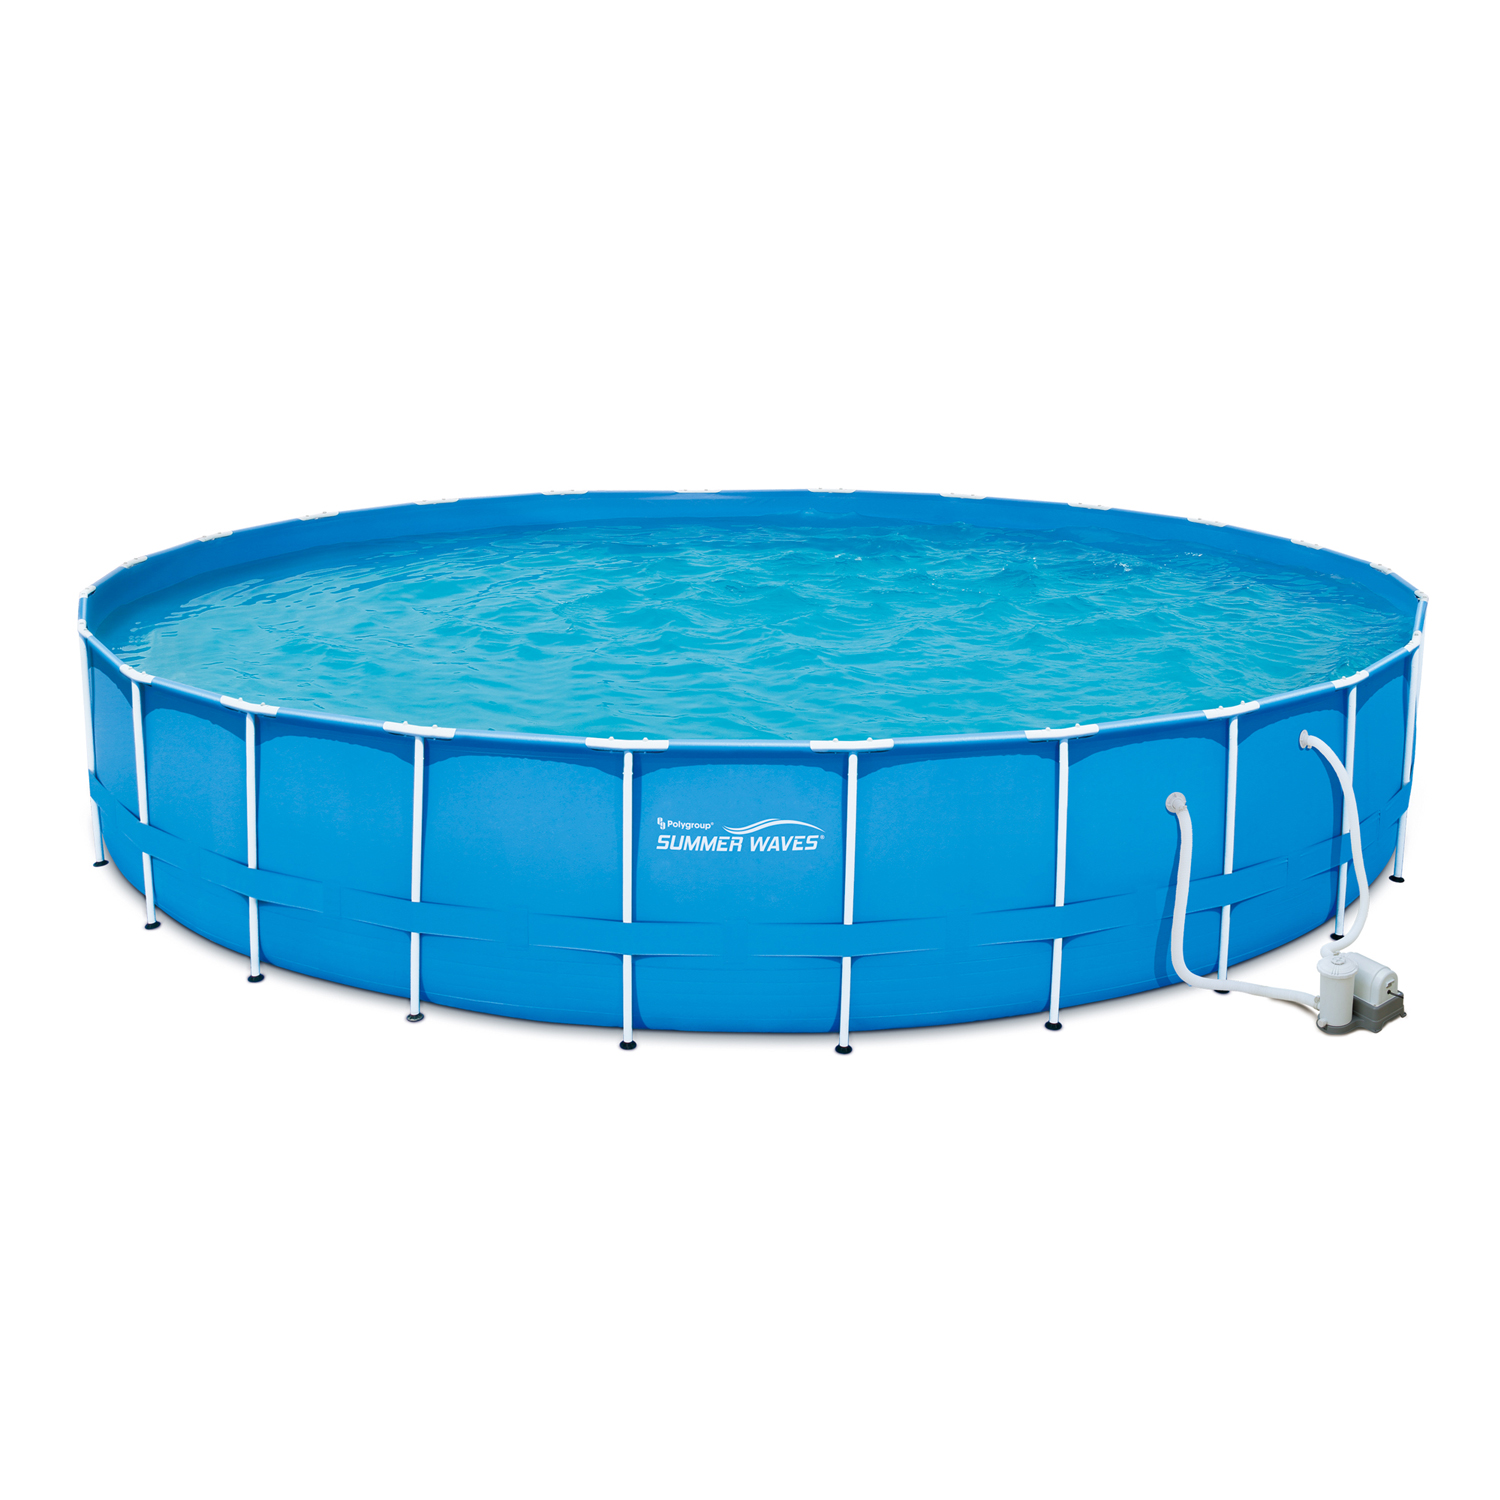 "Summer Waves 24'x52"" Metal Frame Above Ground Swimming Pool"